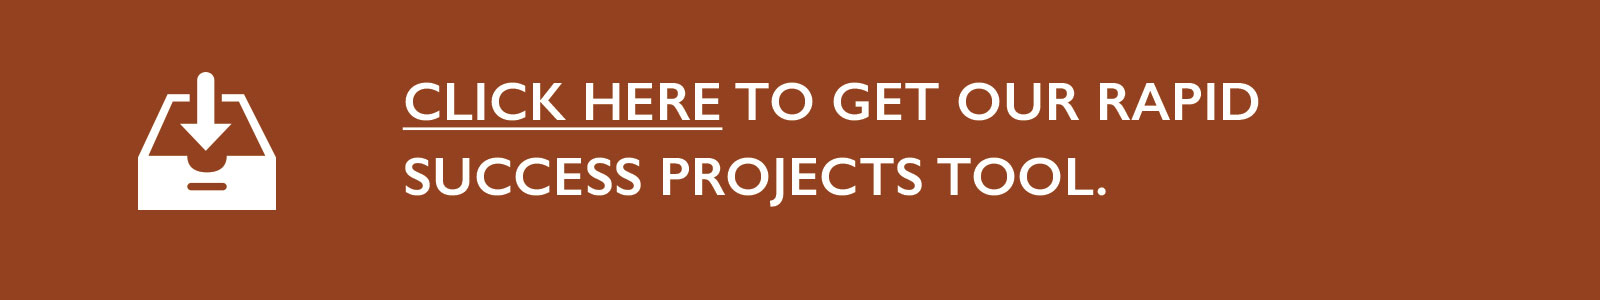 Download Rapid Success Projects Tool